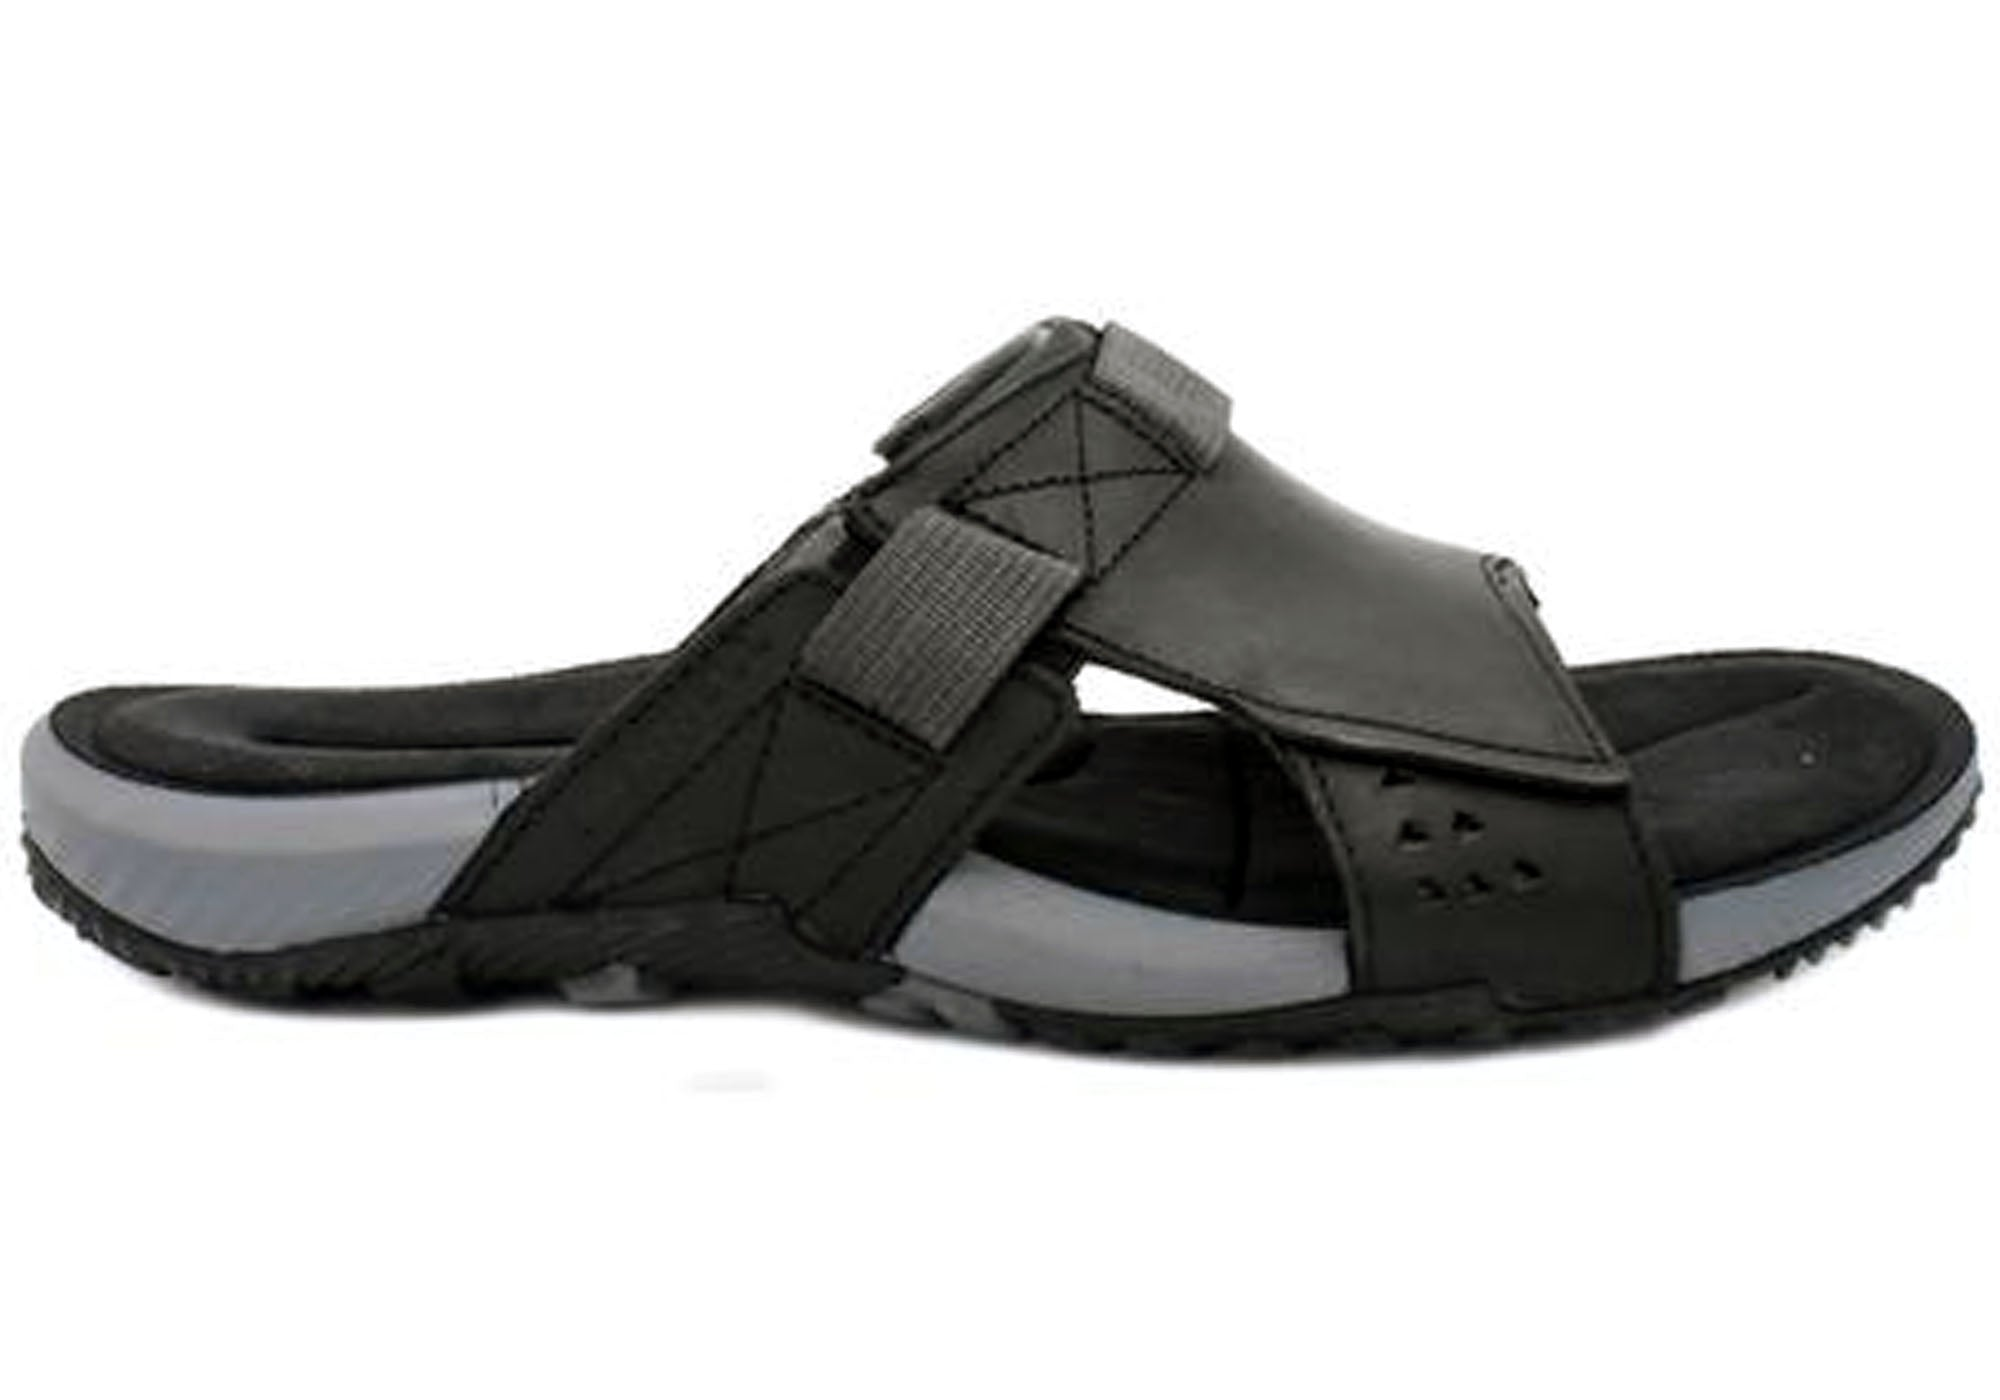 b474c0d915e3 Home Merrell Terrant Slide Mens Comfortable Leather Sandals. Dark Earth ·  Black · Black ...